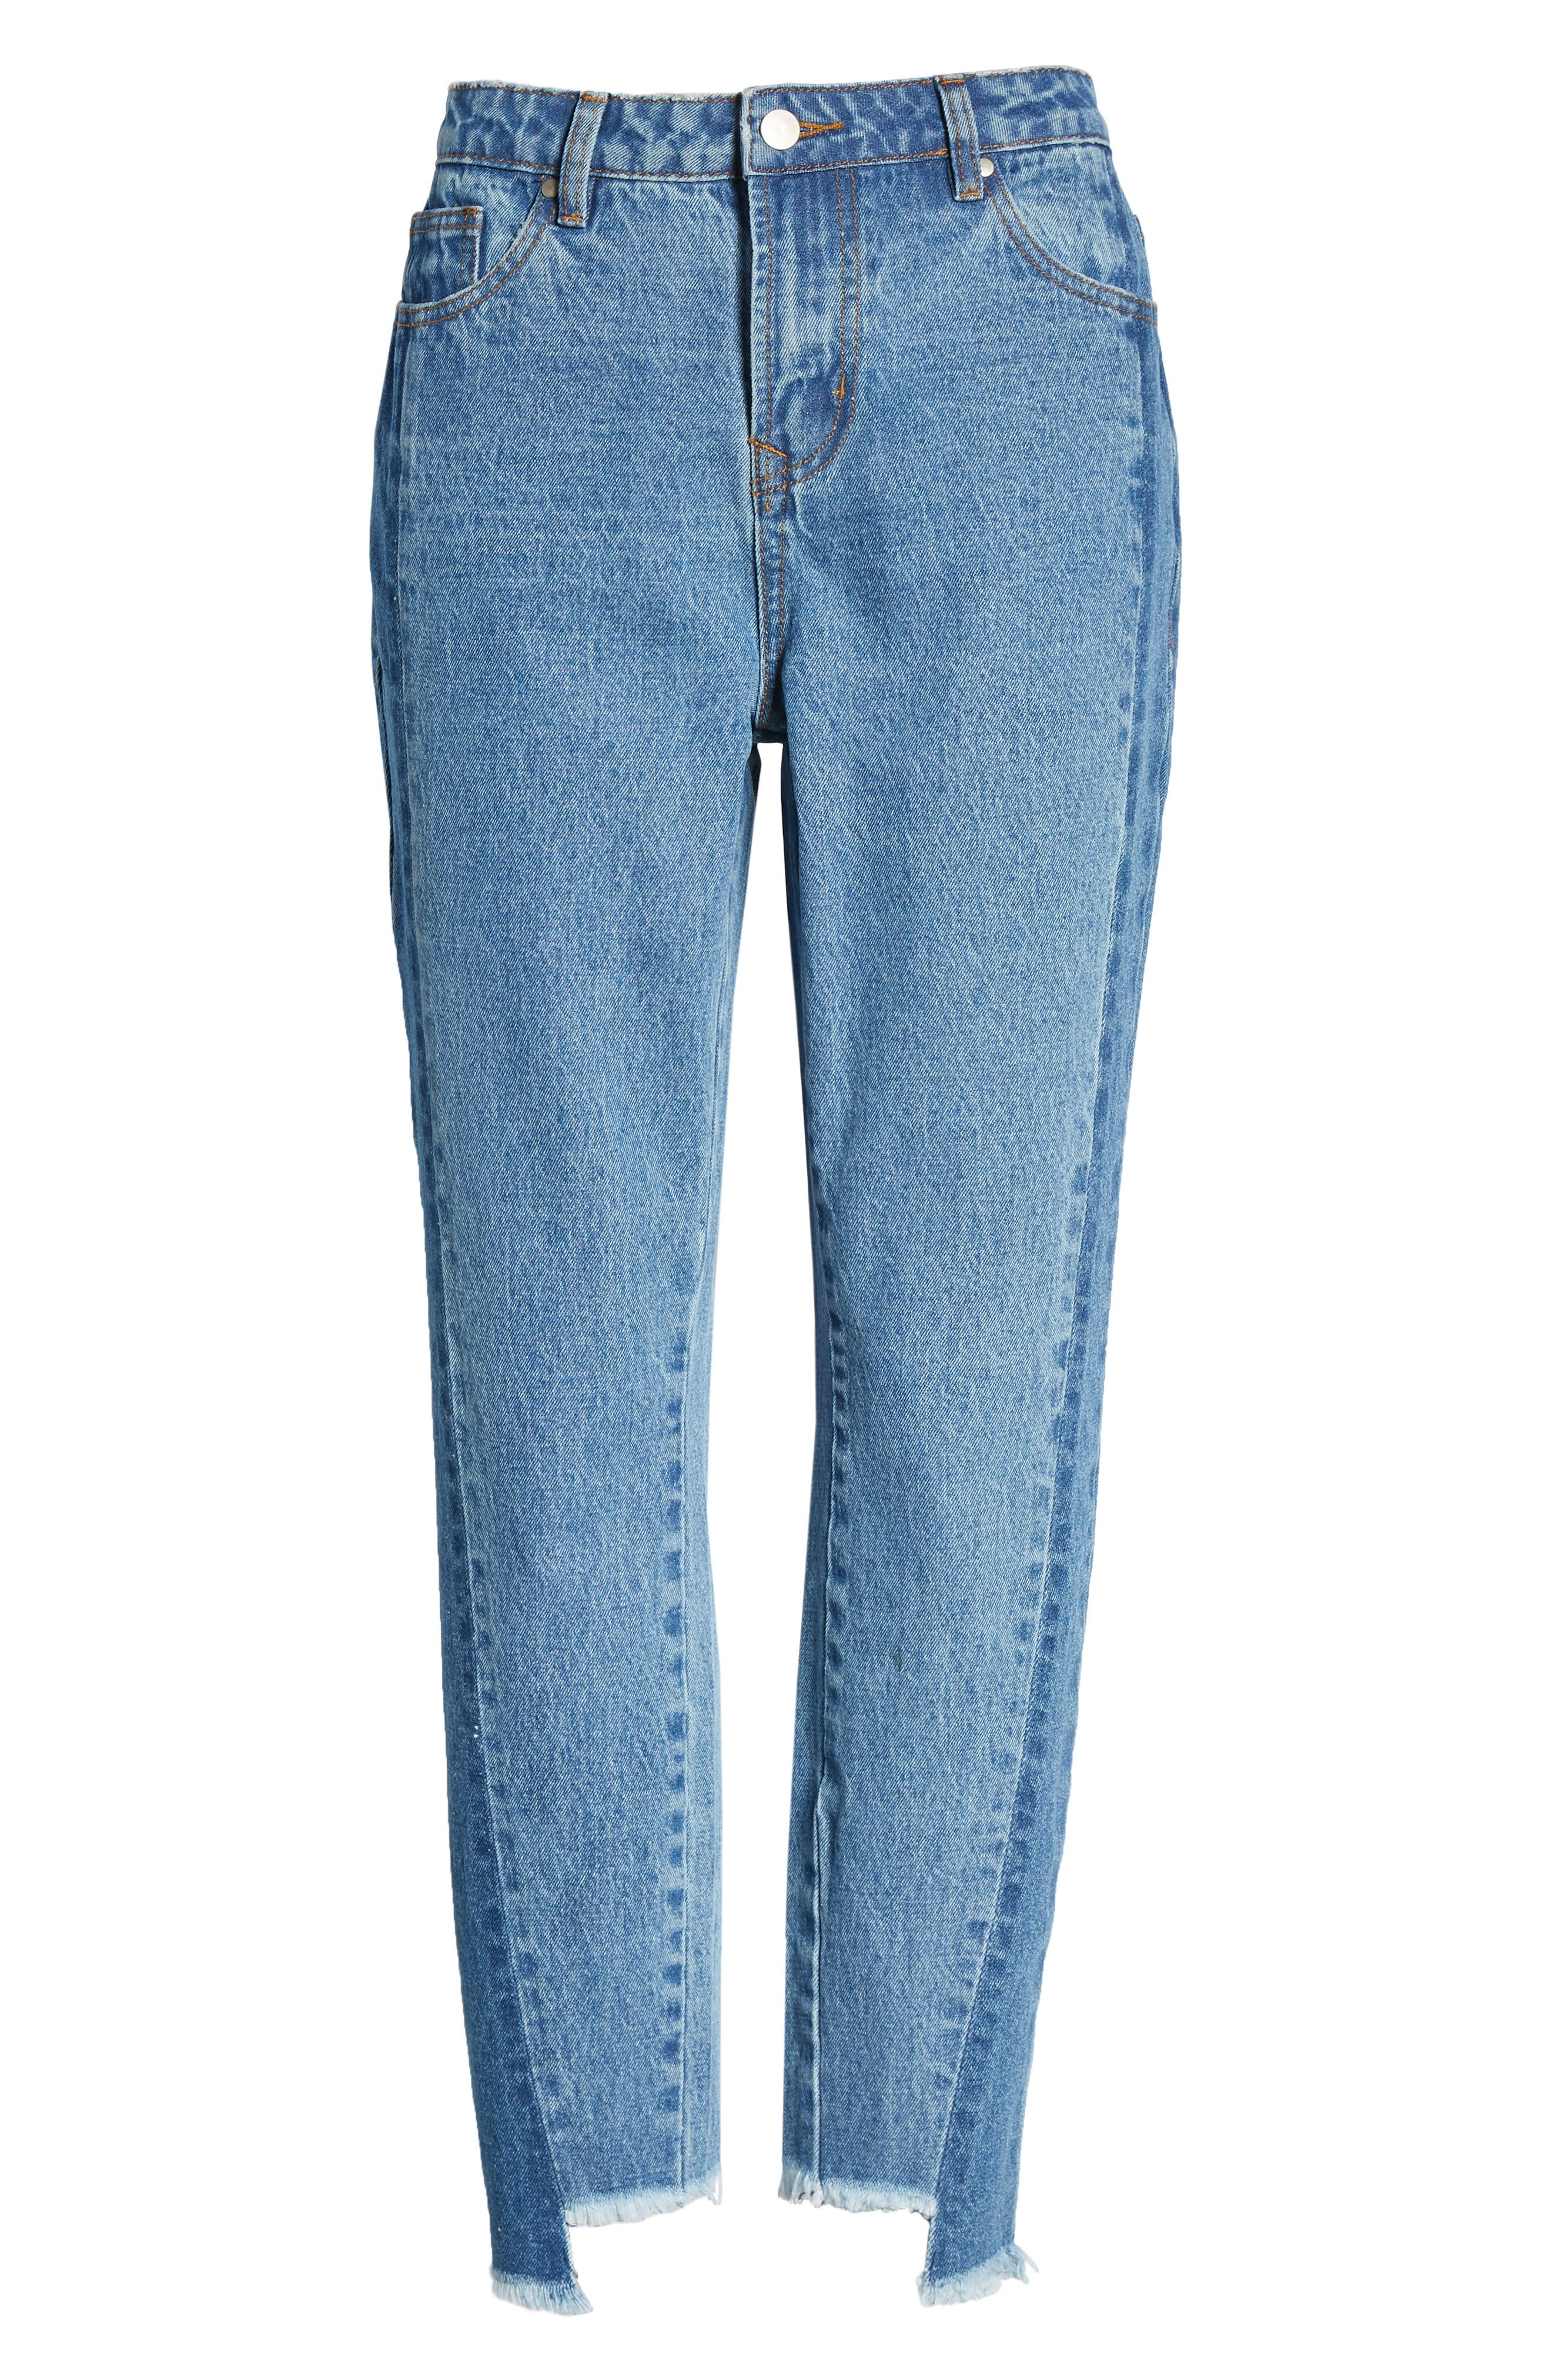 Step Hem Two-Tone Rigid Jeans,                             Alternate thumbnail 7, color,                             Light Med Wash